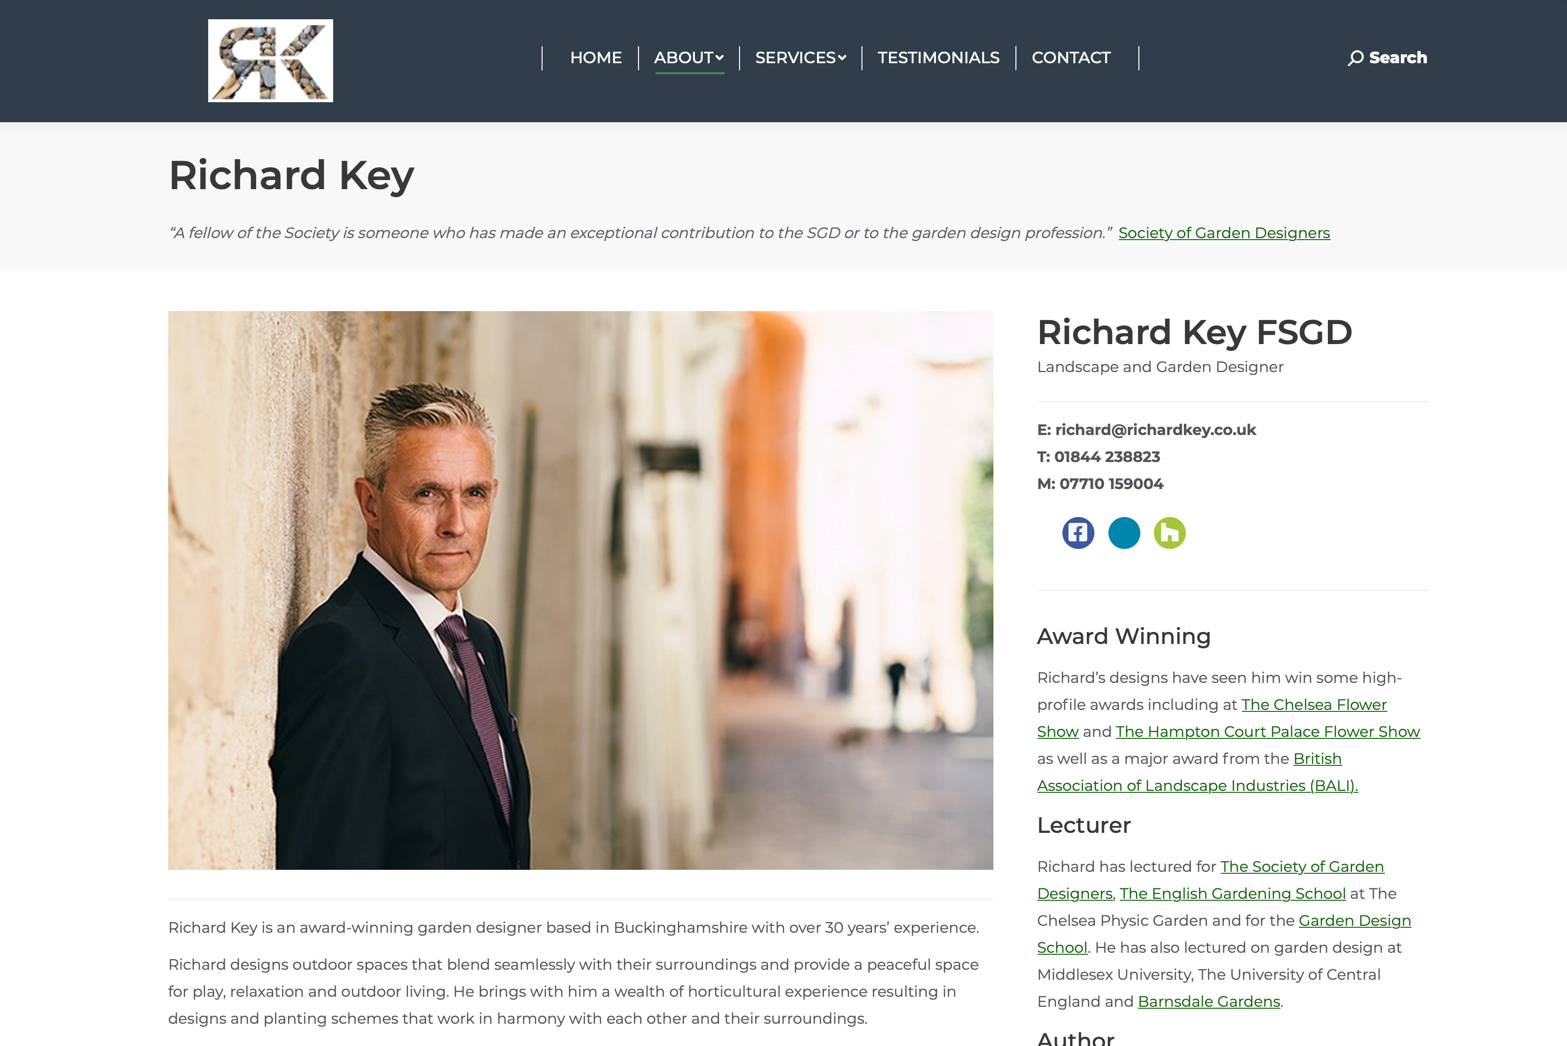 richard key landscape web design uk scotland